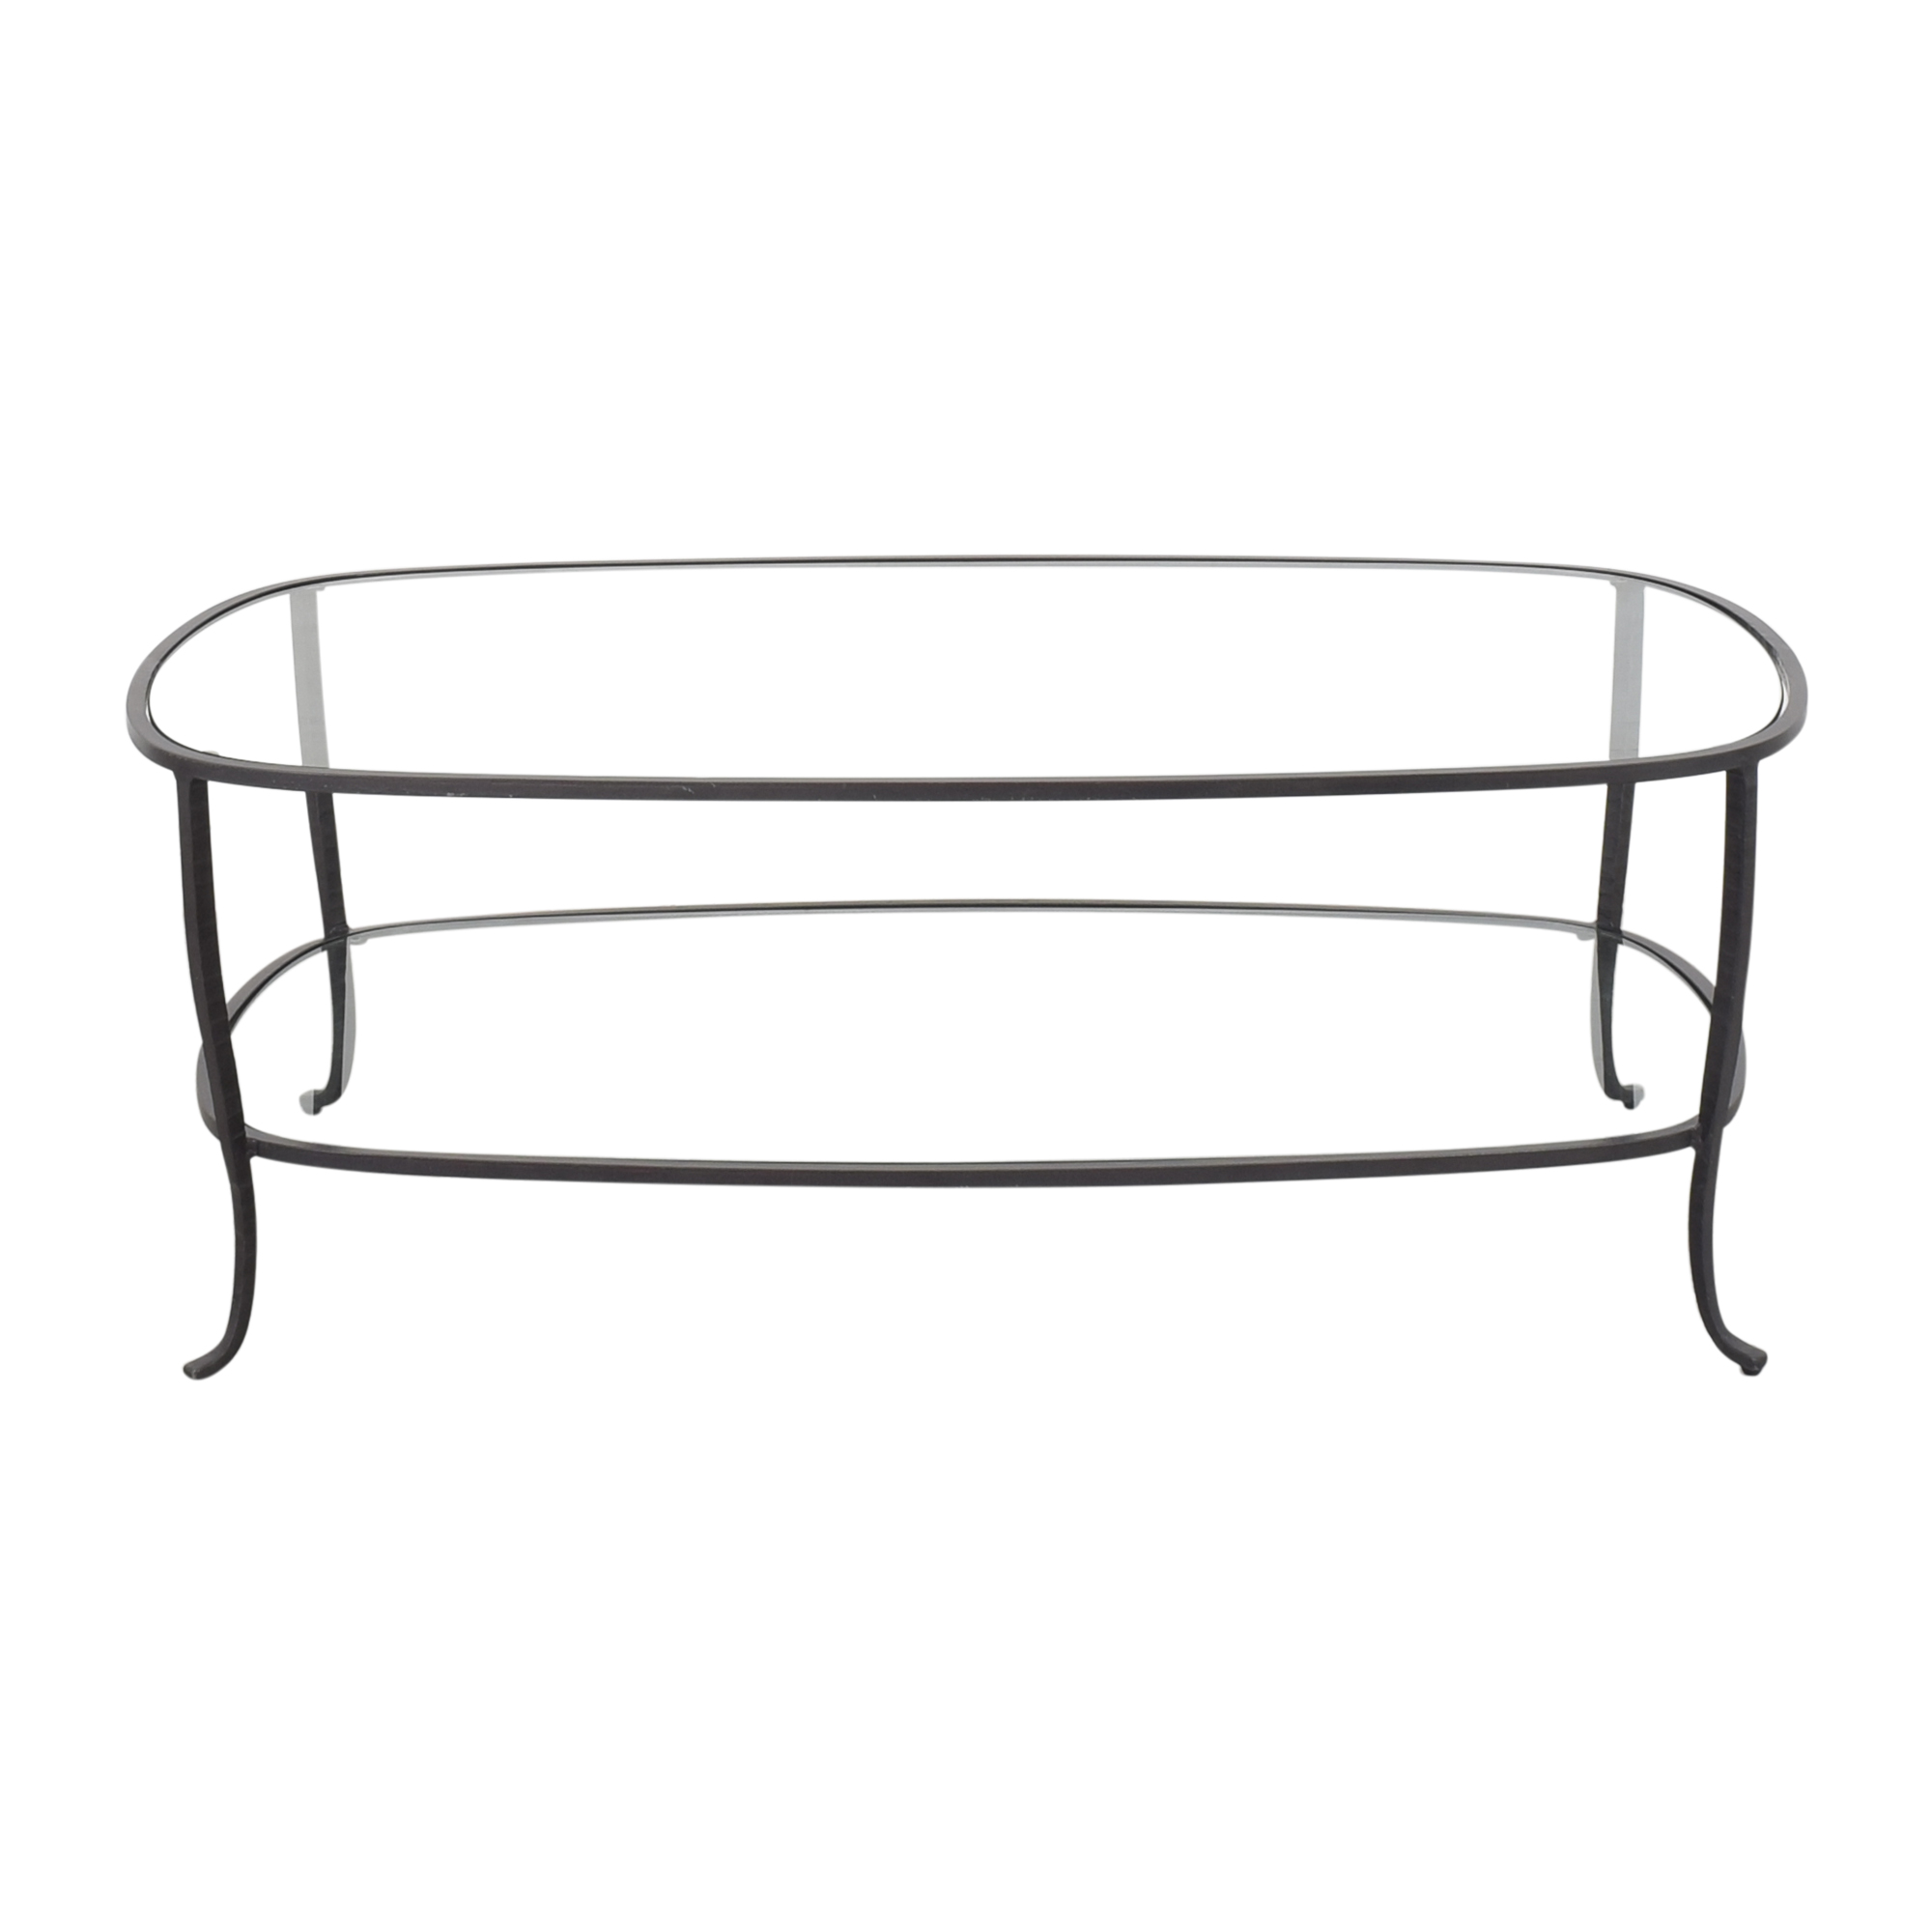 Pottery Barn Oval Coffee Table / Coffee Tables